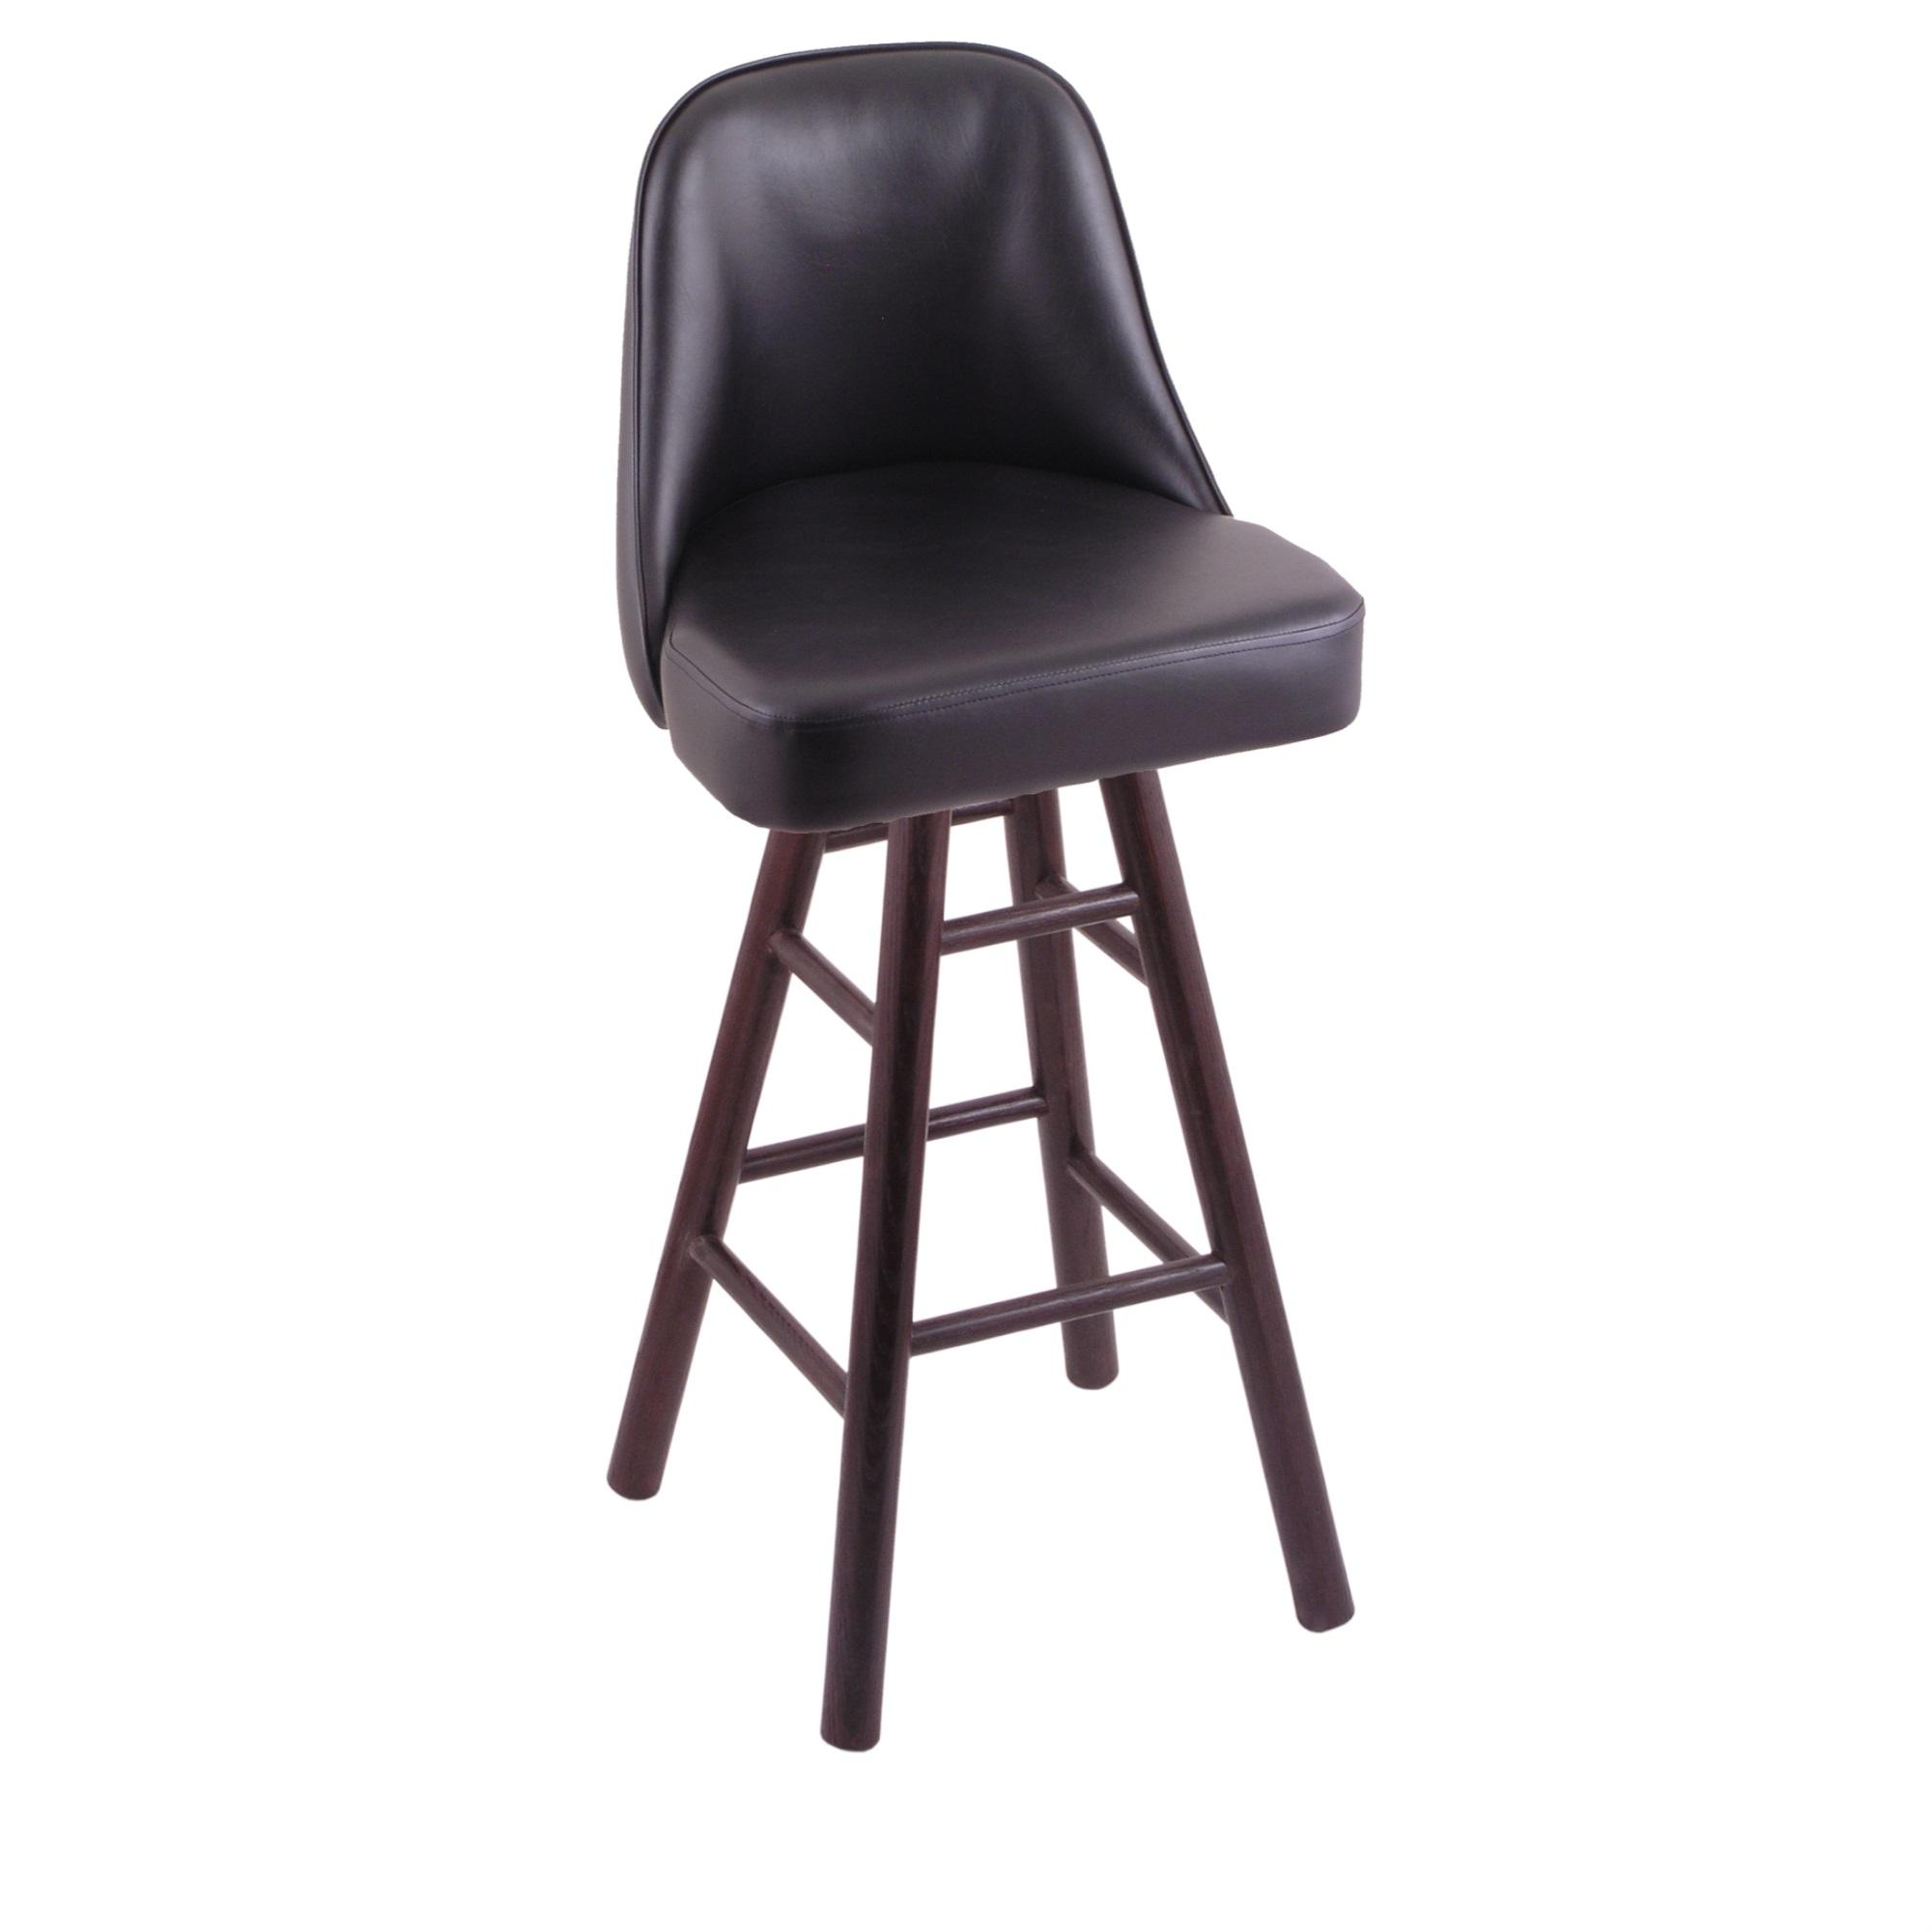 Grizzly Counter Stool with Smooth Oak Legs, Dark Cherry Finish, and 360 Swivel